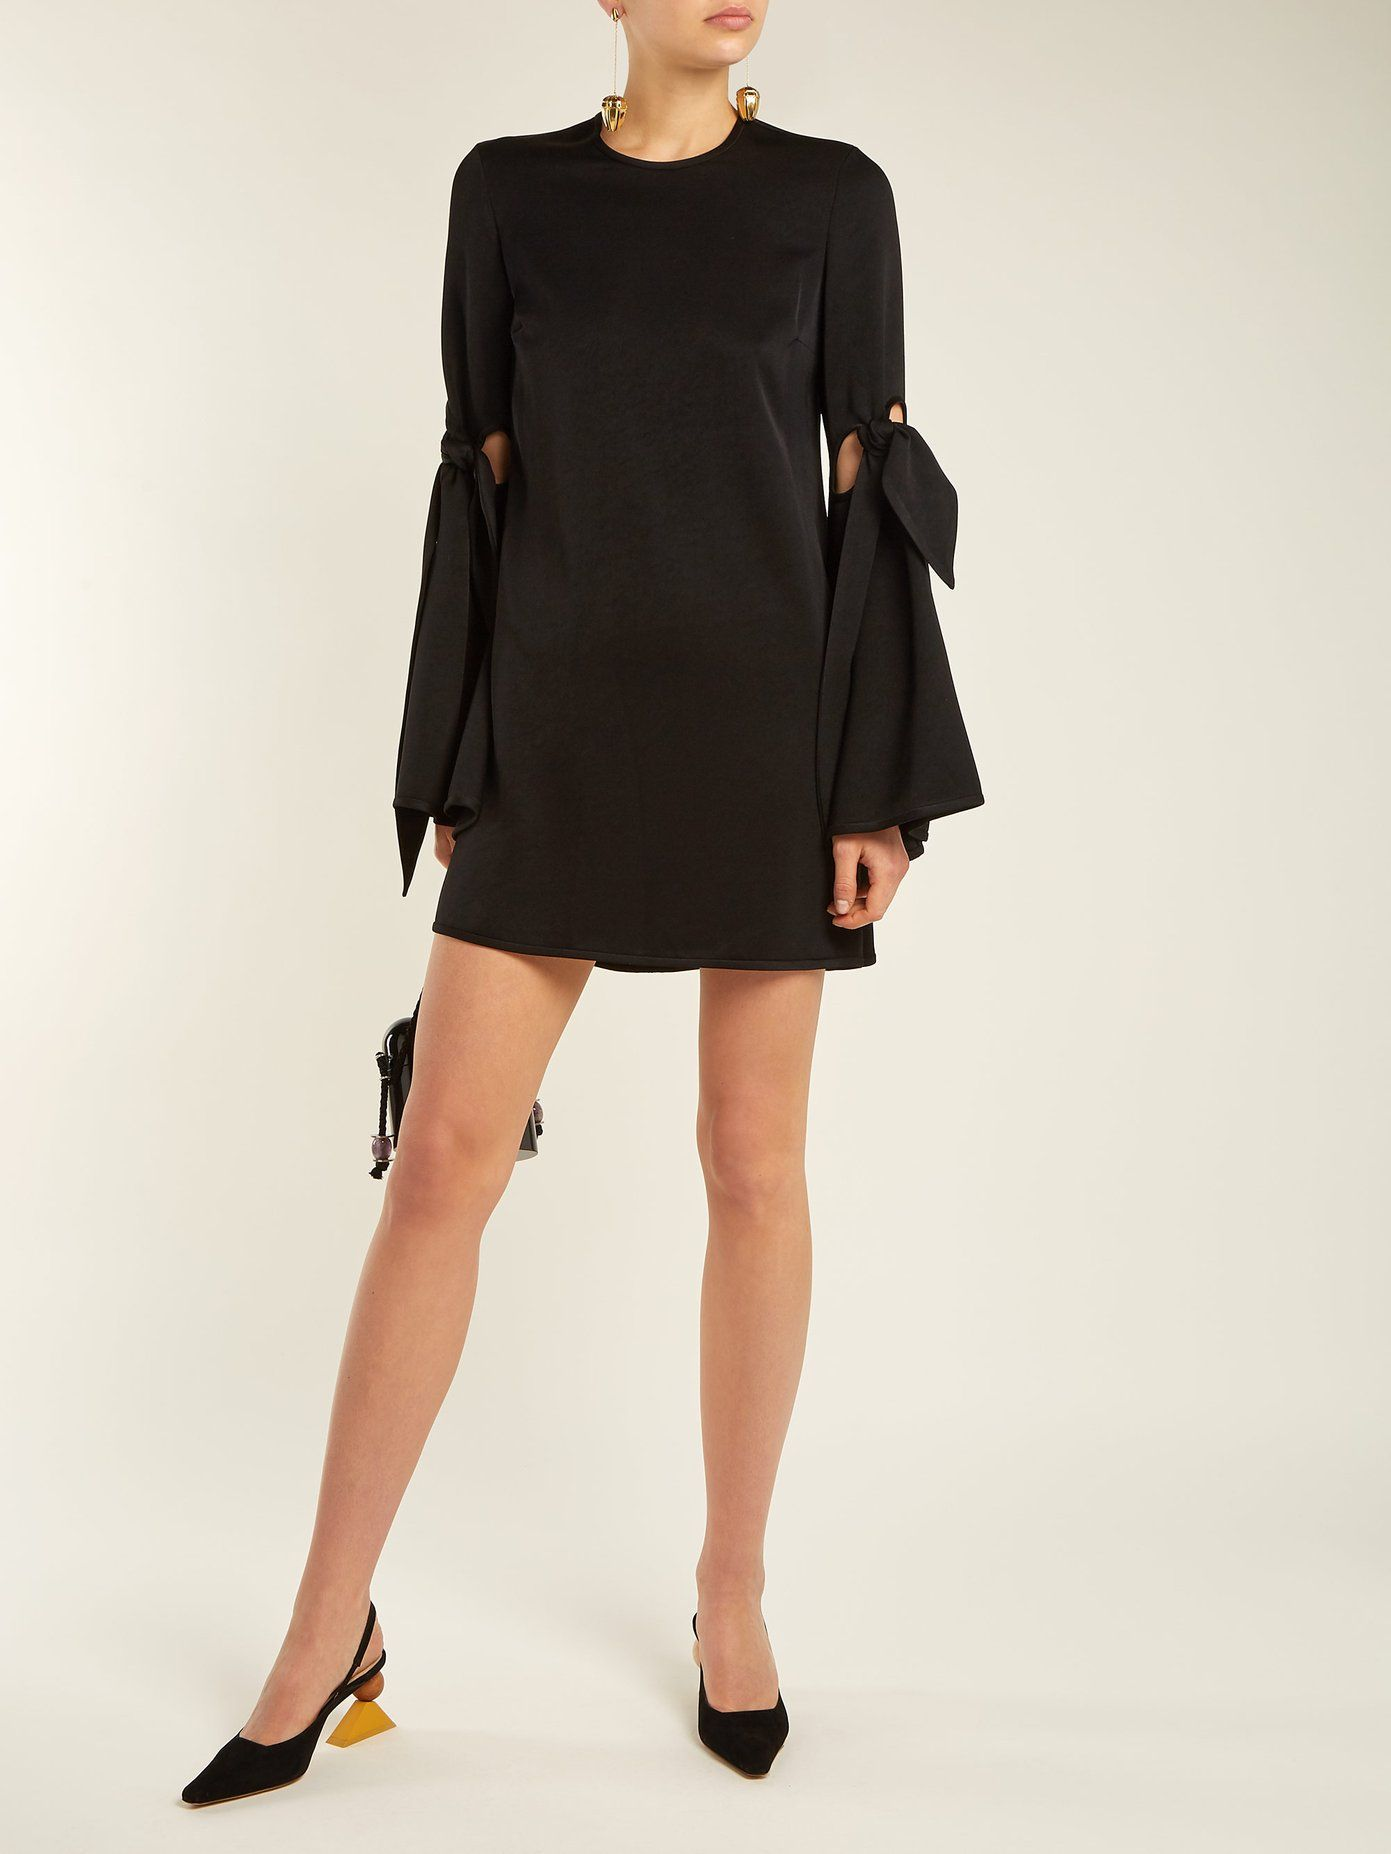 Thelma cut-out sleeve mini dress Ellery Outlet Wide Range Of HQtzR